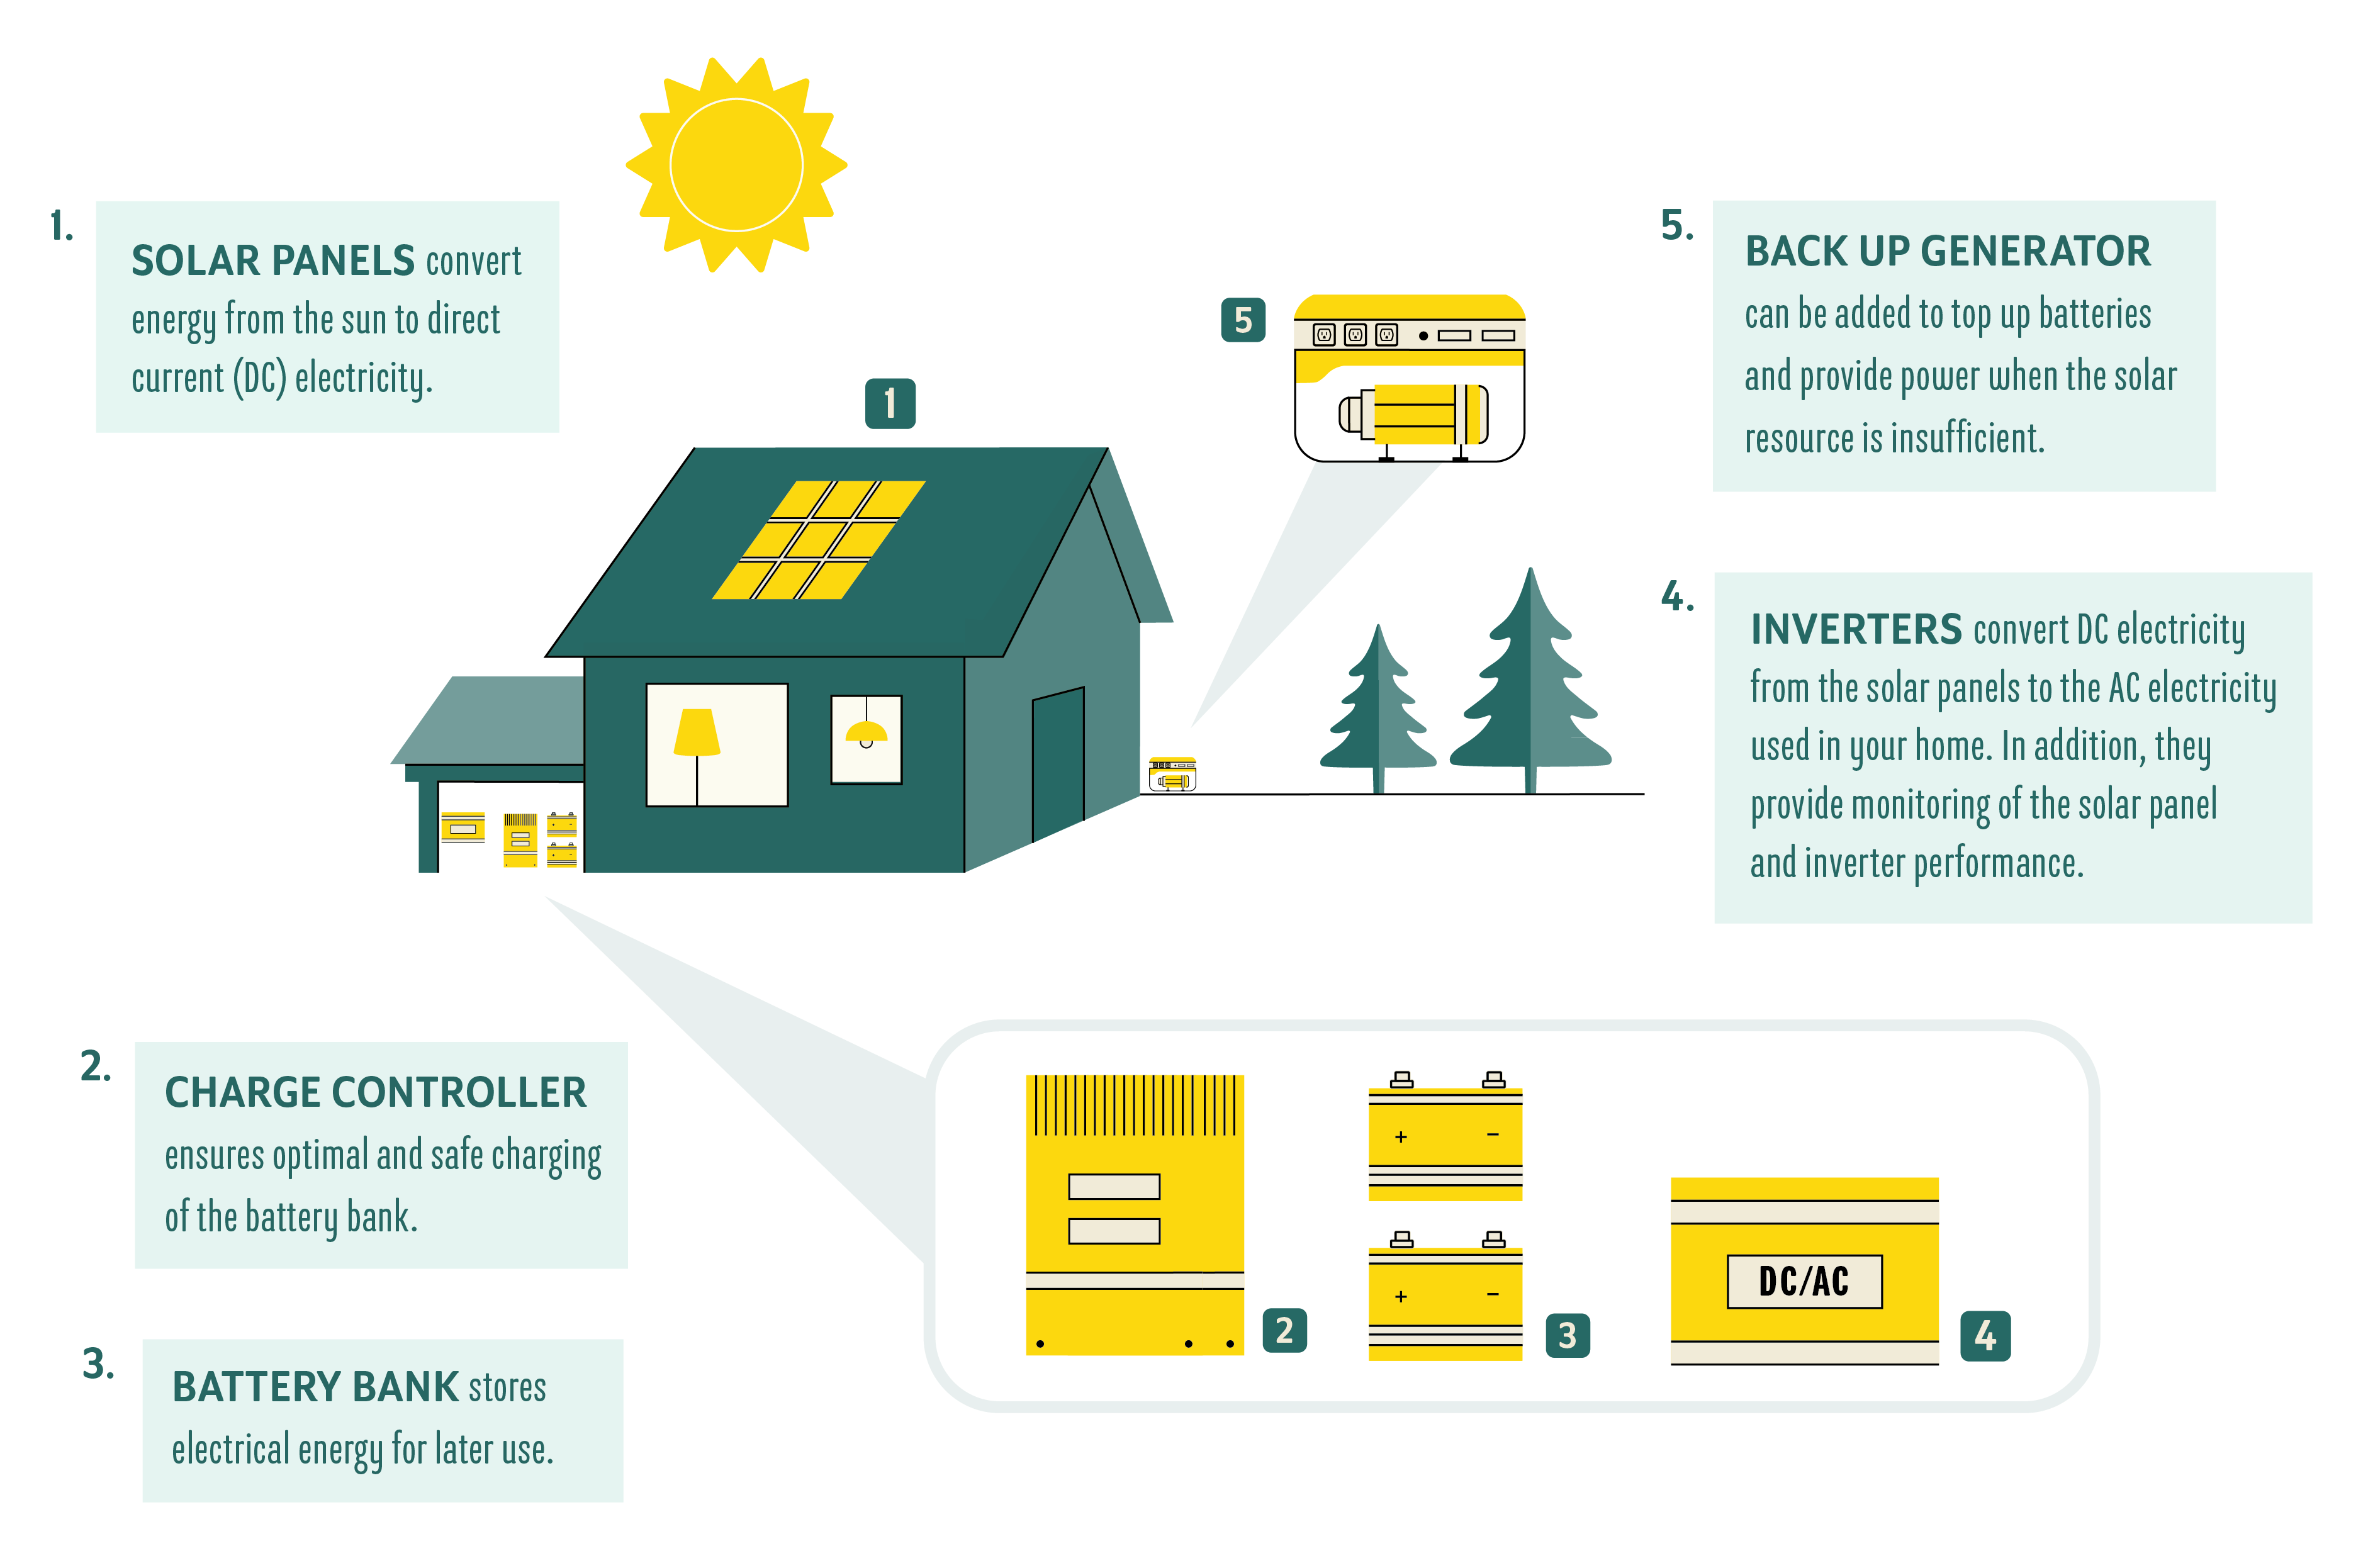 Infographic for off-grid